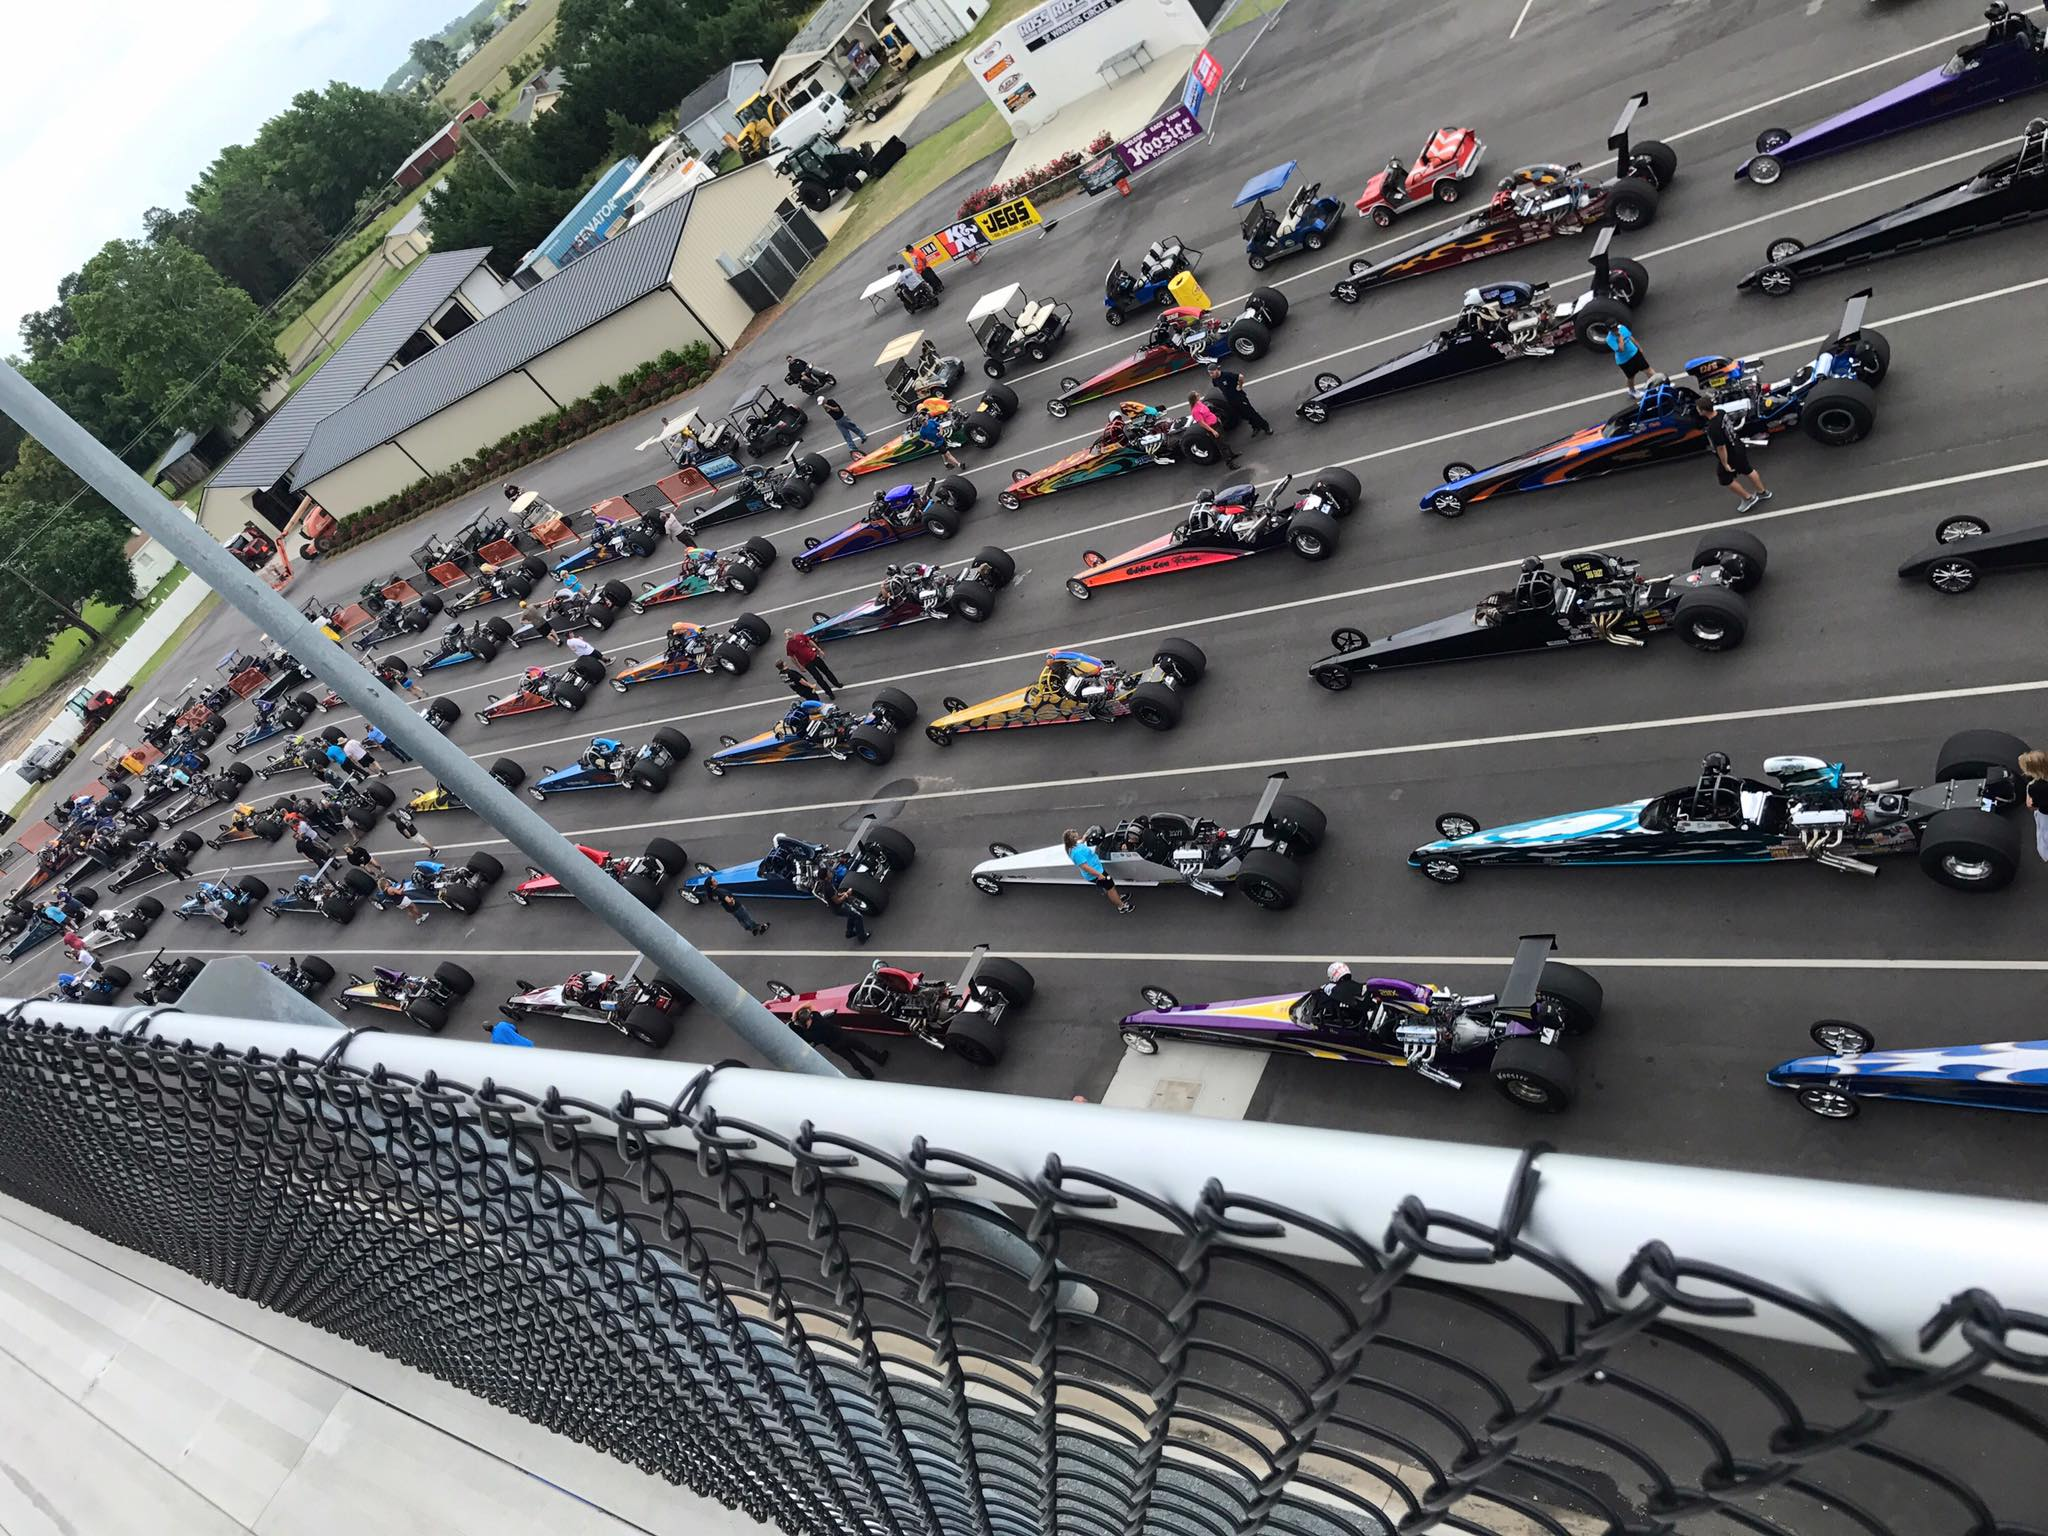 Lanes Full of Dragsters